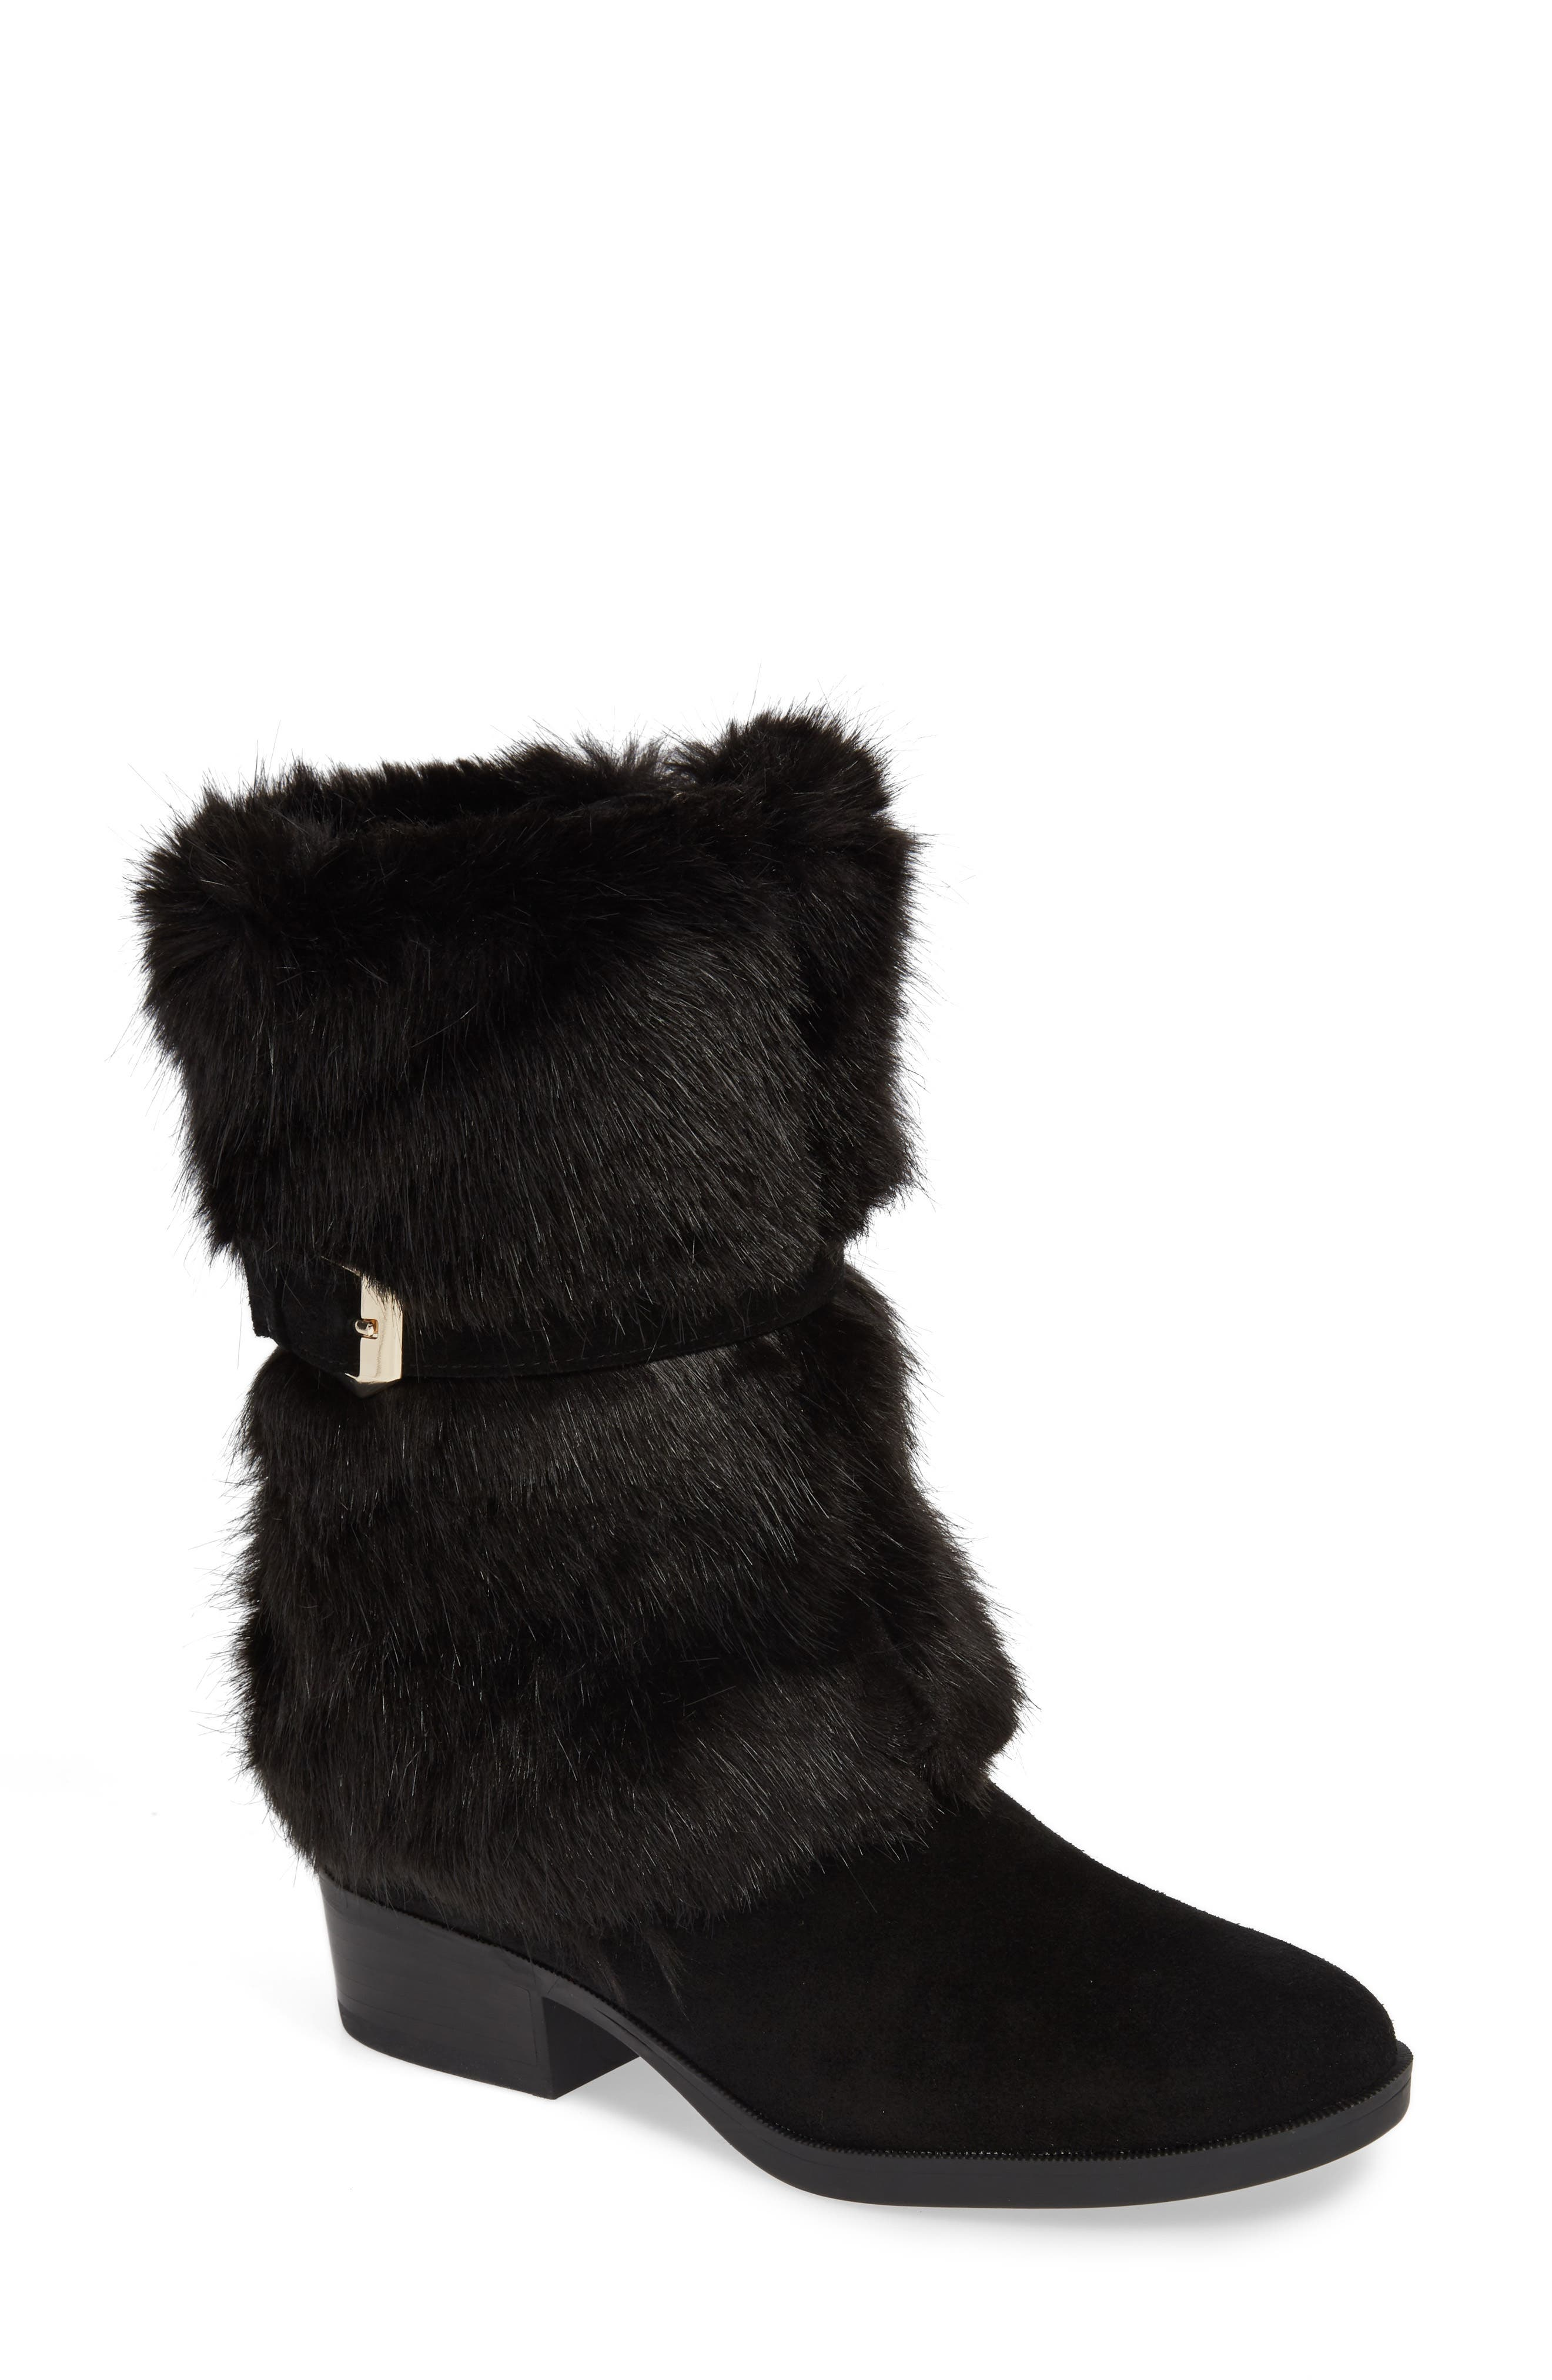 TARYN ROSE Giselle Water Resistant Faux Fur Boot, Main, color, BLACK SUEDE